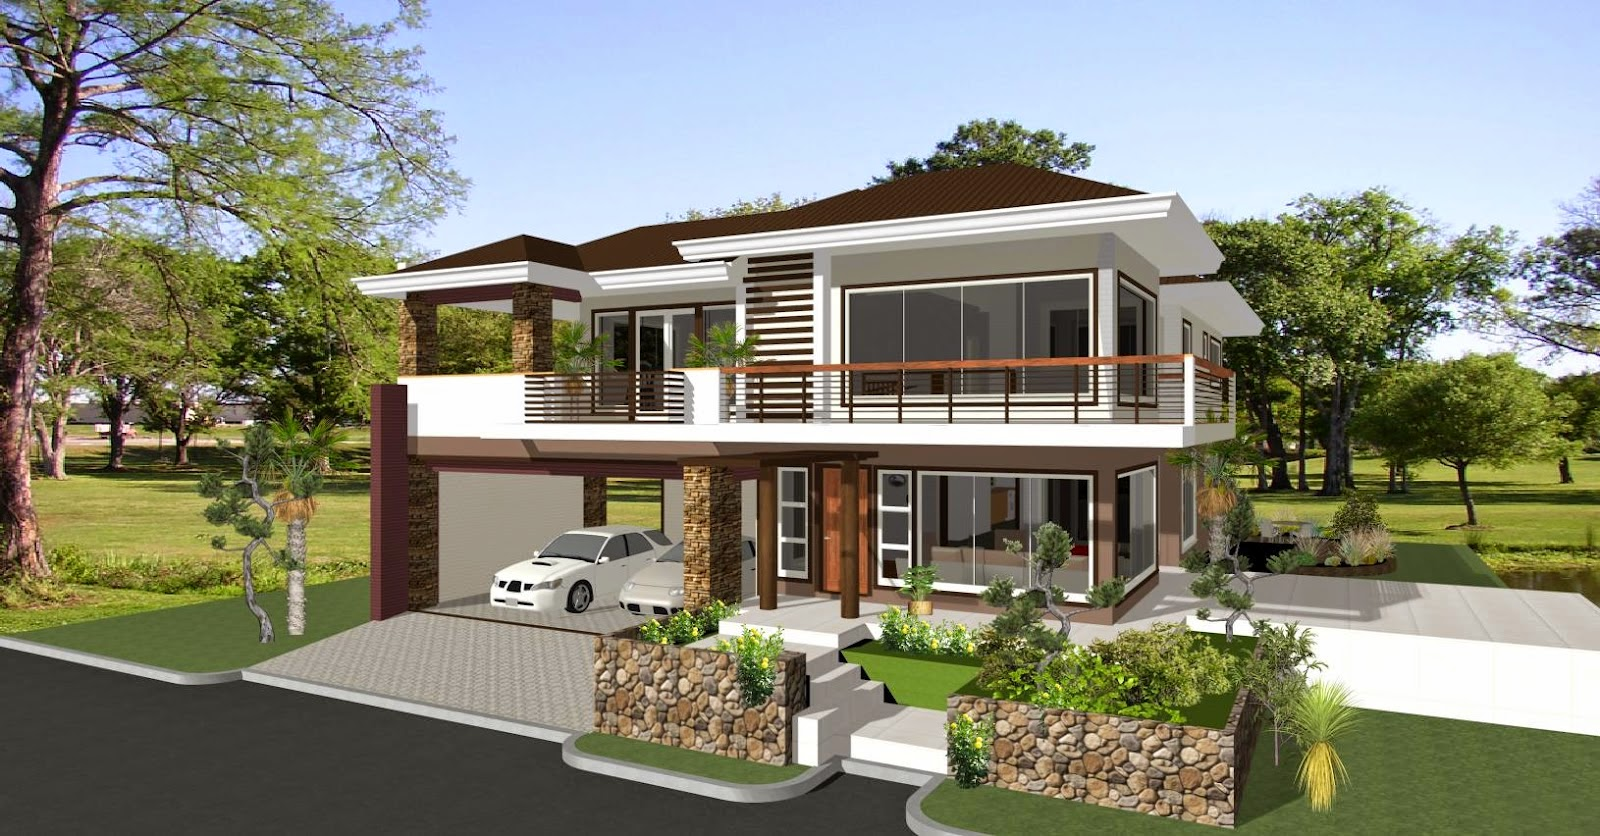 House design yourself - House Design